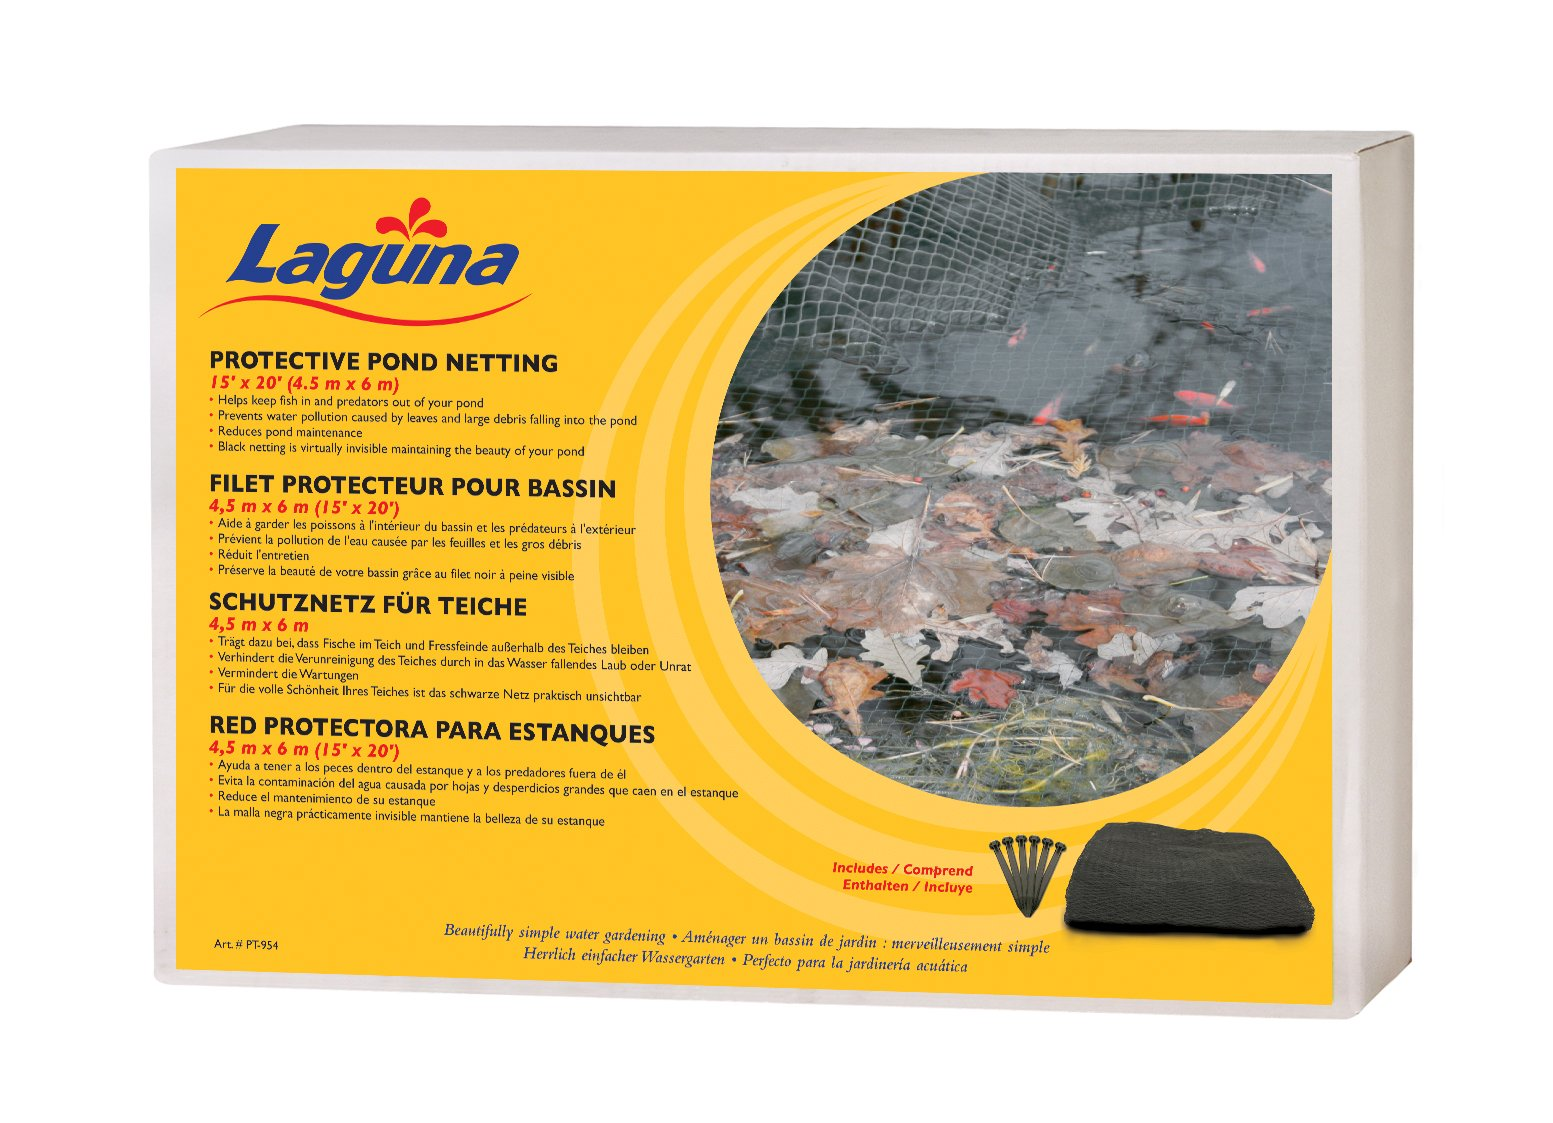 Laguna 15 Feet x 20 Feet Pond Netting with Placement Stakes, Black